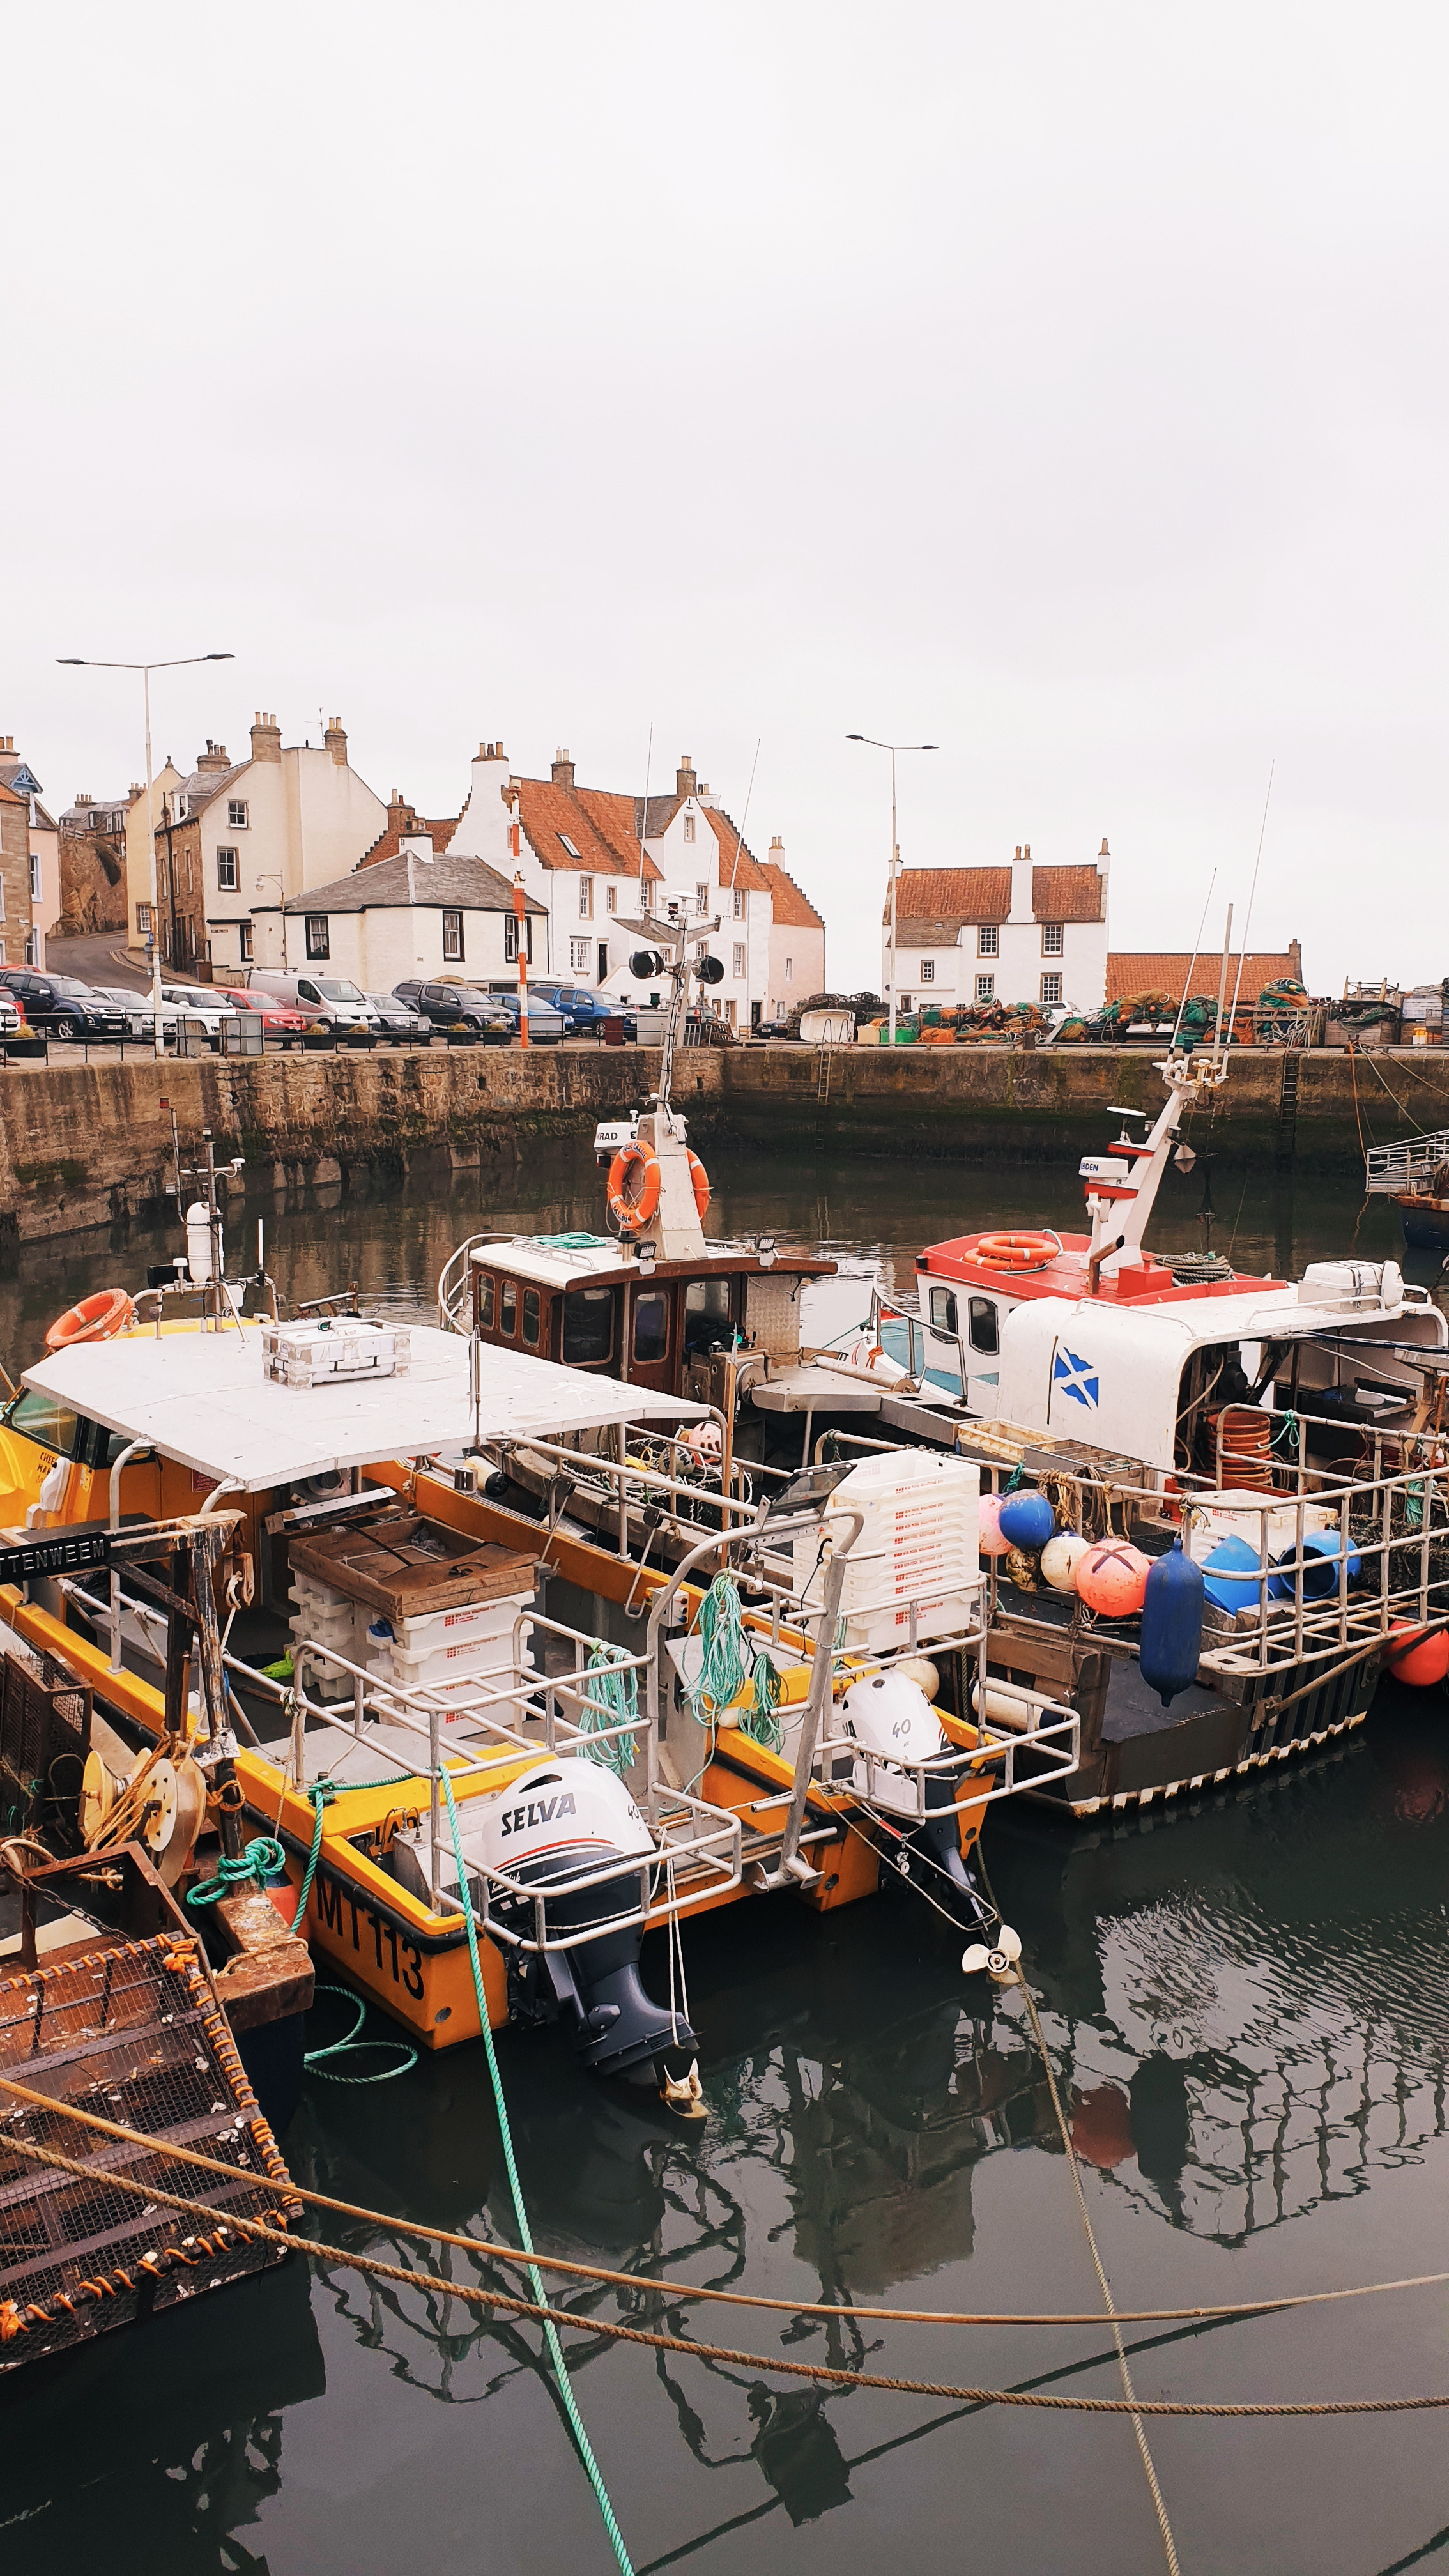 The harbour in Pittenweem